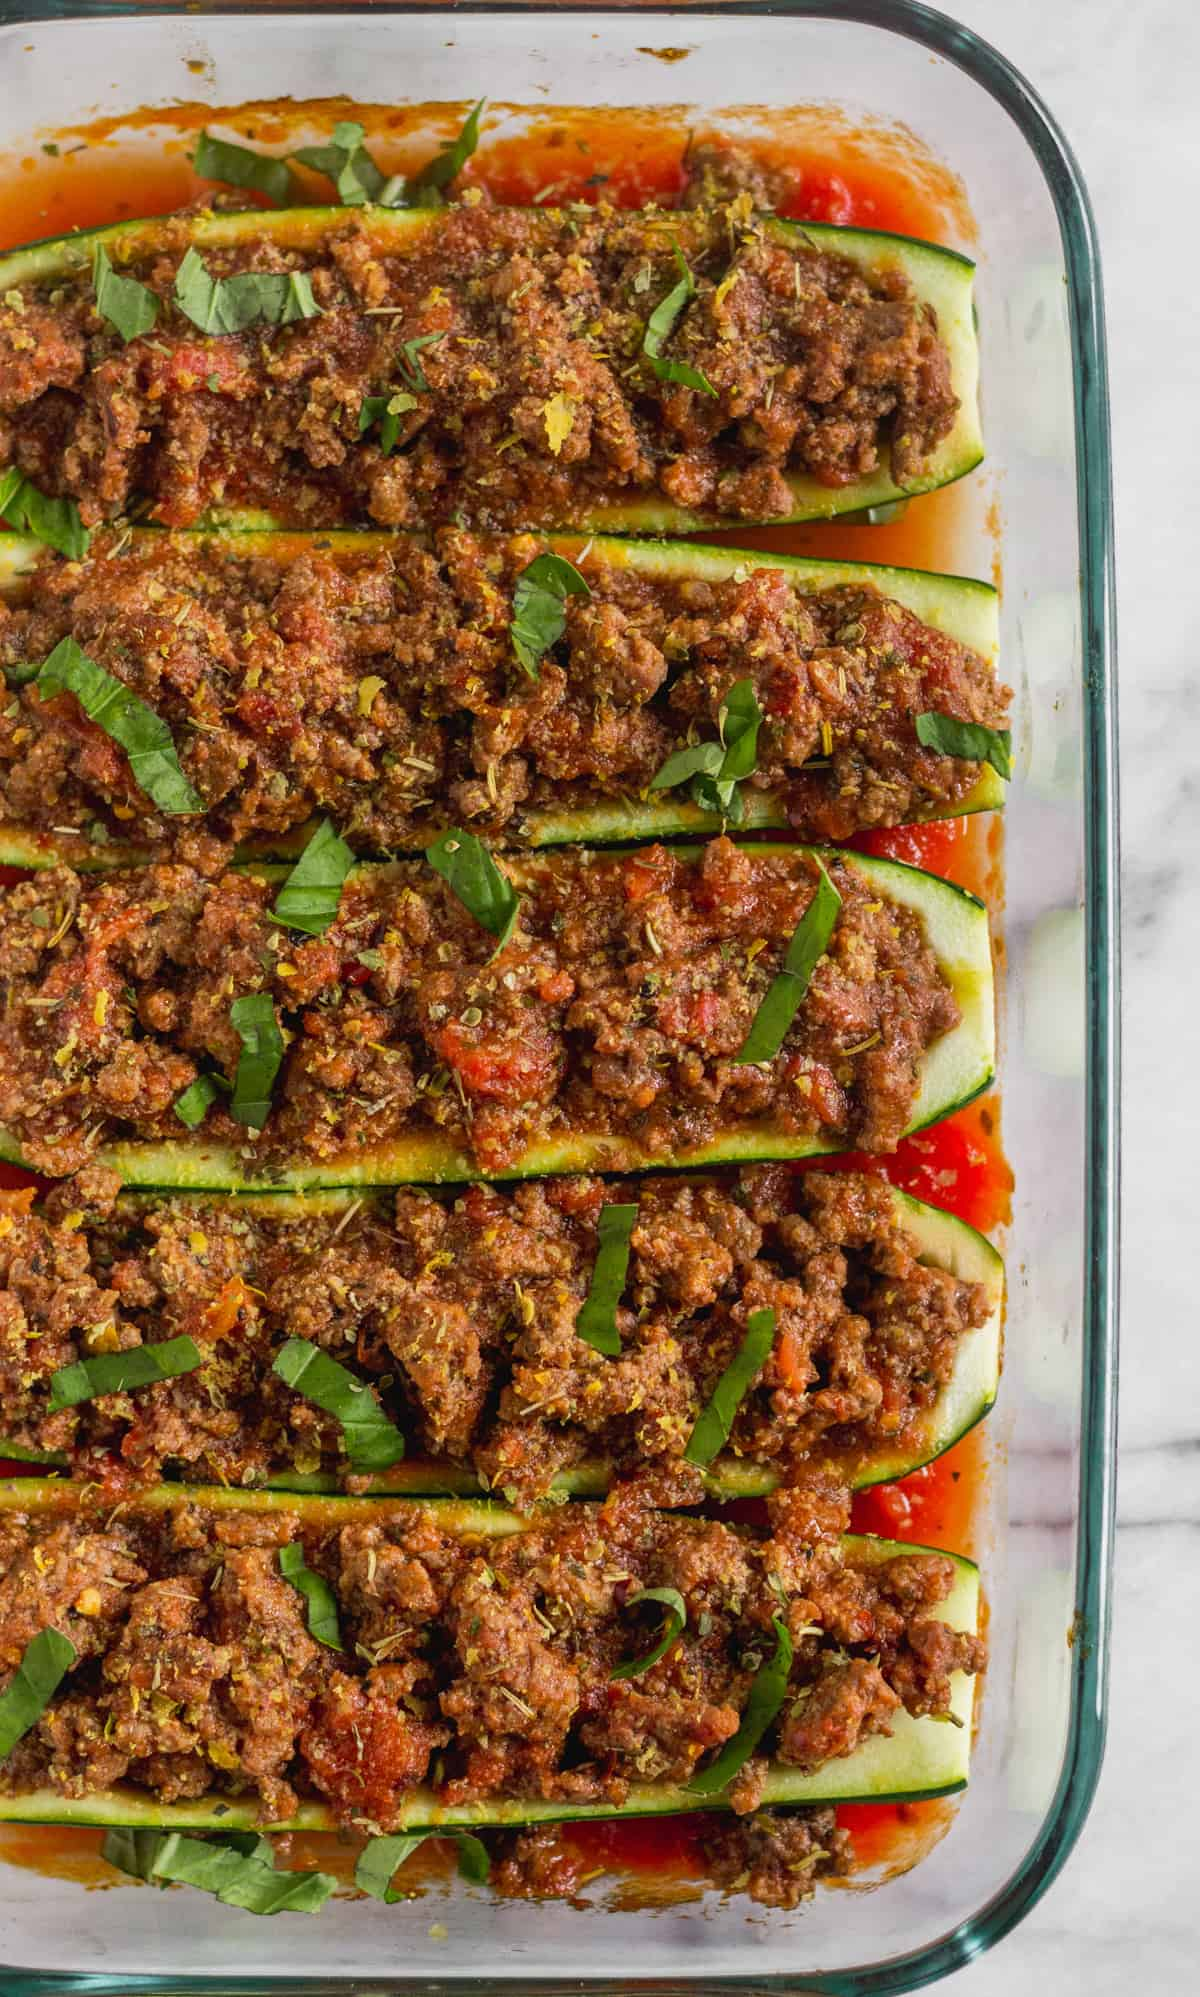 Pan filled with 5 zucchini boats stuffed with Italian seasoned beef